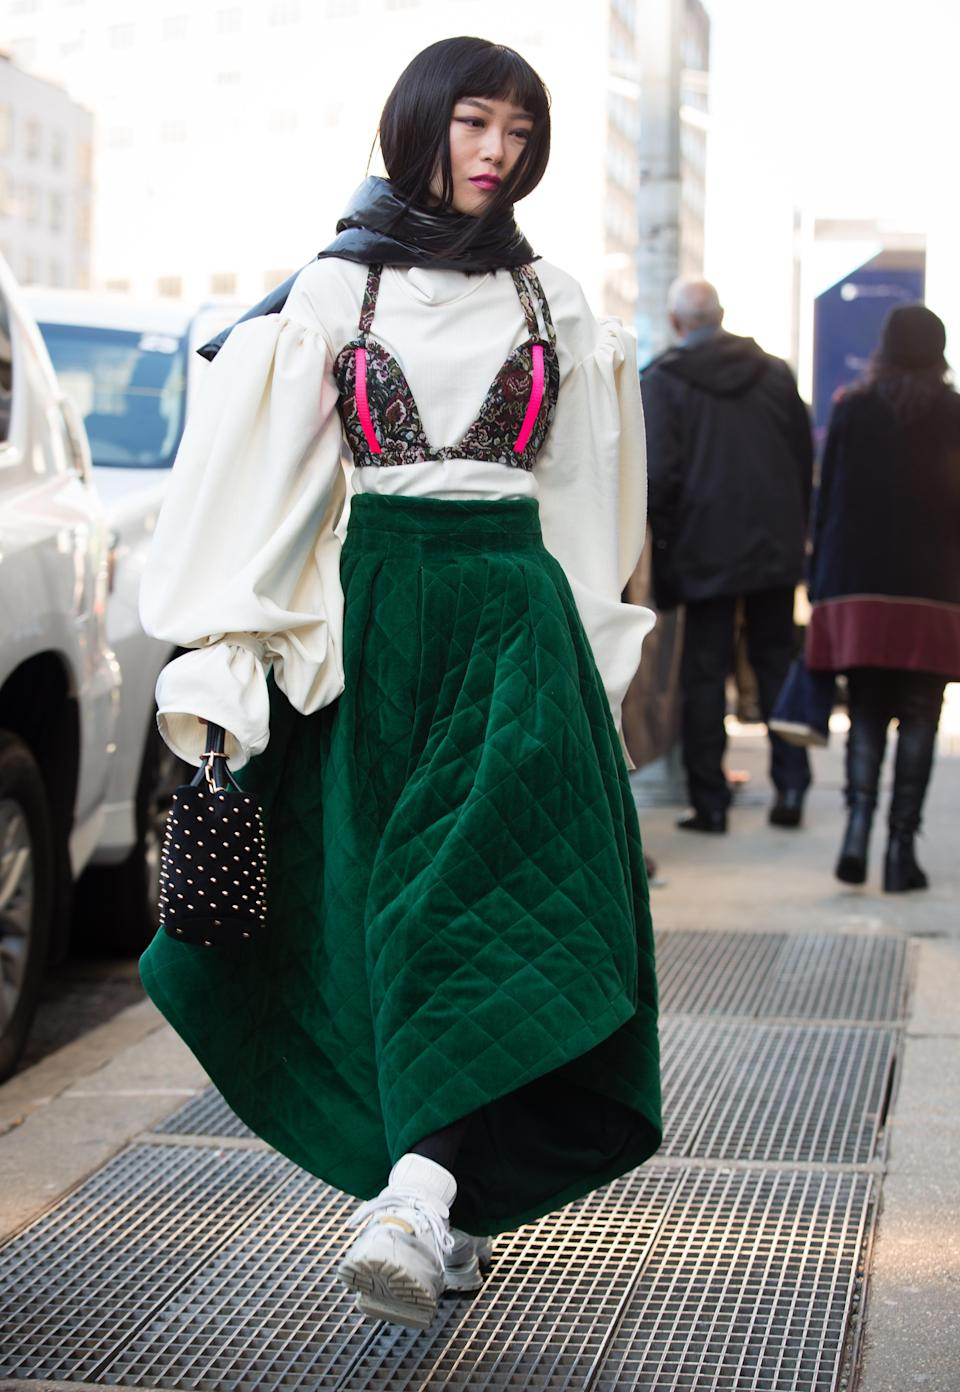 <p>A guest walks outside the Son Jung Wang show wearing a black scarf, white shirt, green dress and white shoes. <em>[Photo: Getty]</em> </p>